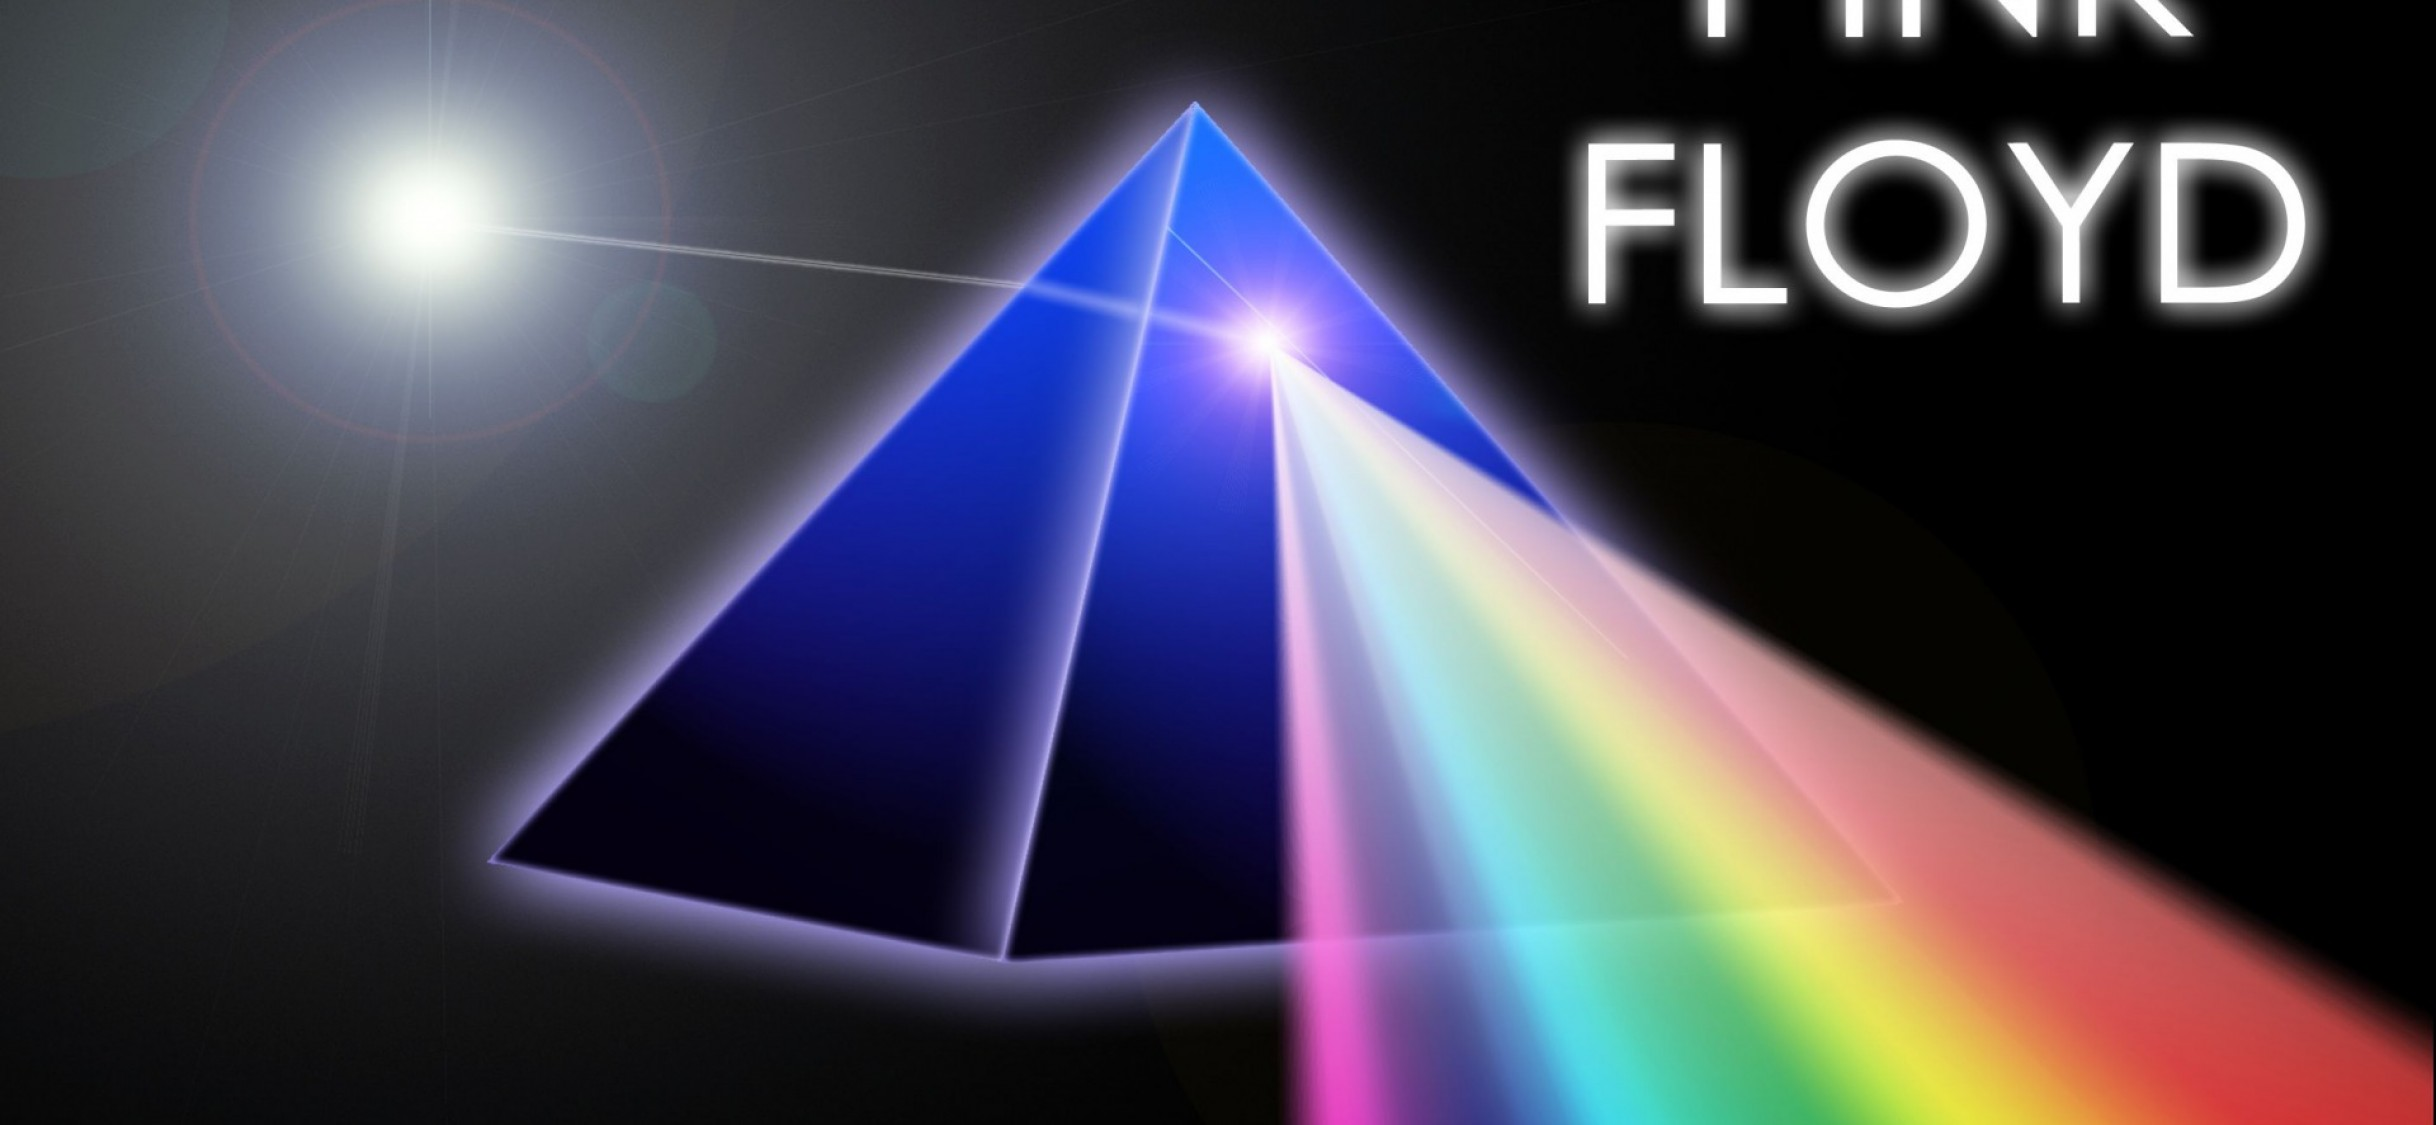 Pink Floyd The Dark Side Of The Moon Hd Wallpaper Iphone X